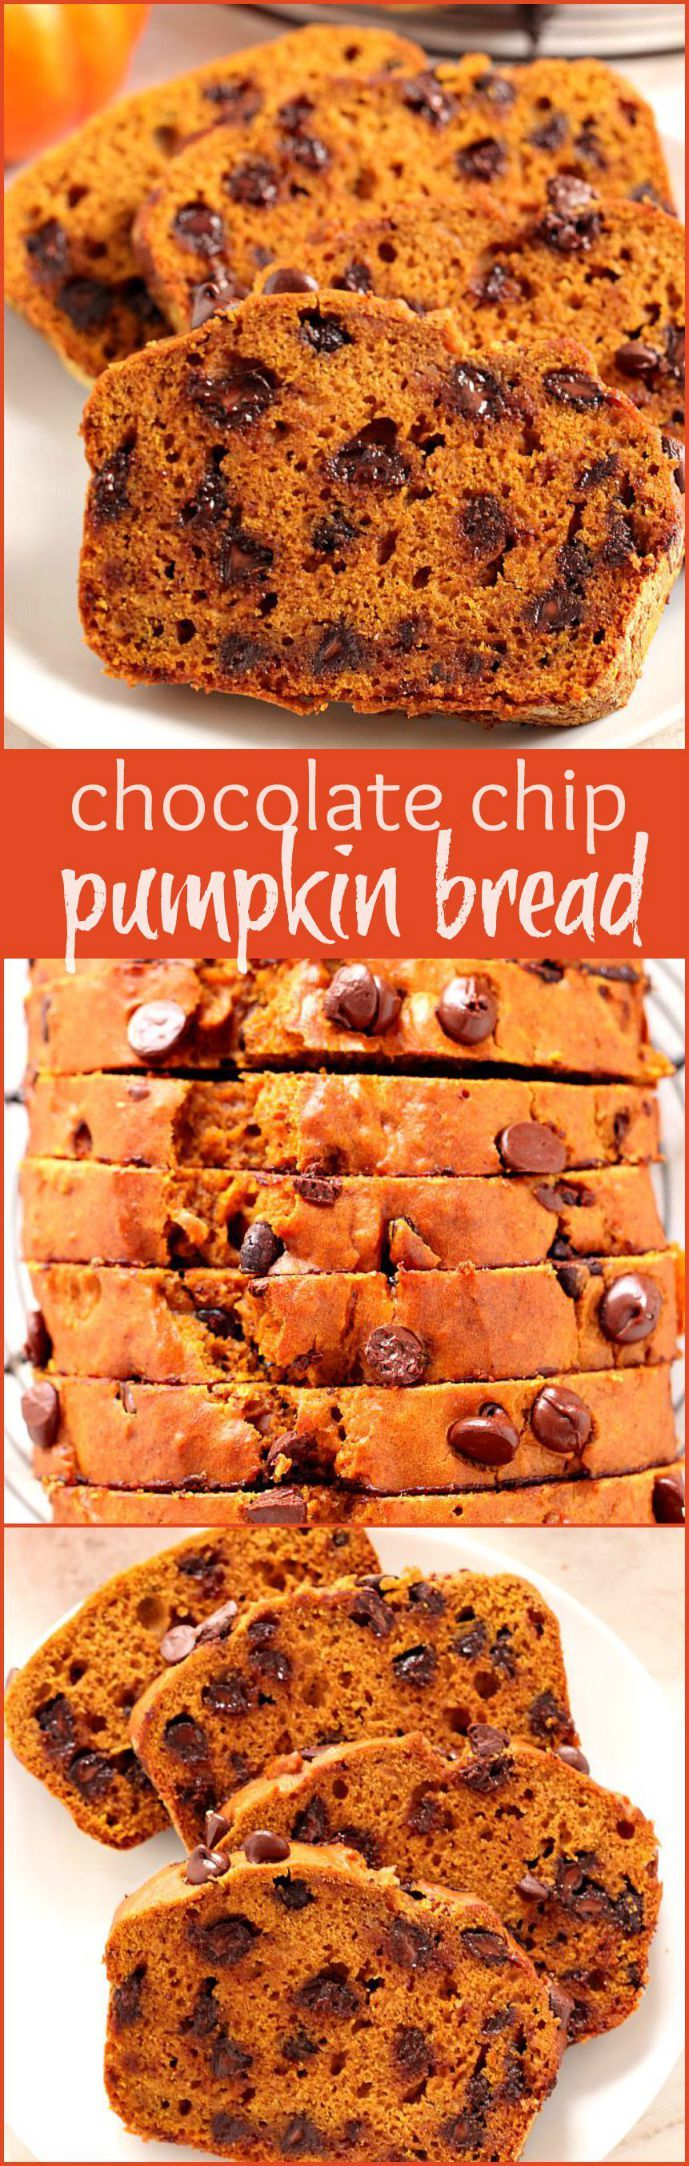 Pumpkin Chocolate Chip Bread - delicious pumpkin bread with a perfect balance of spices and chocolate chips through out. So easy and bakes up perfectly every time!